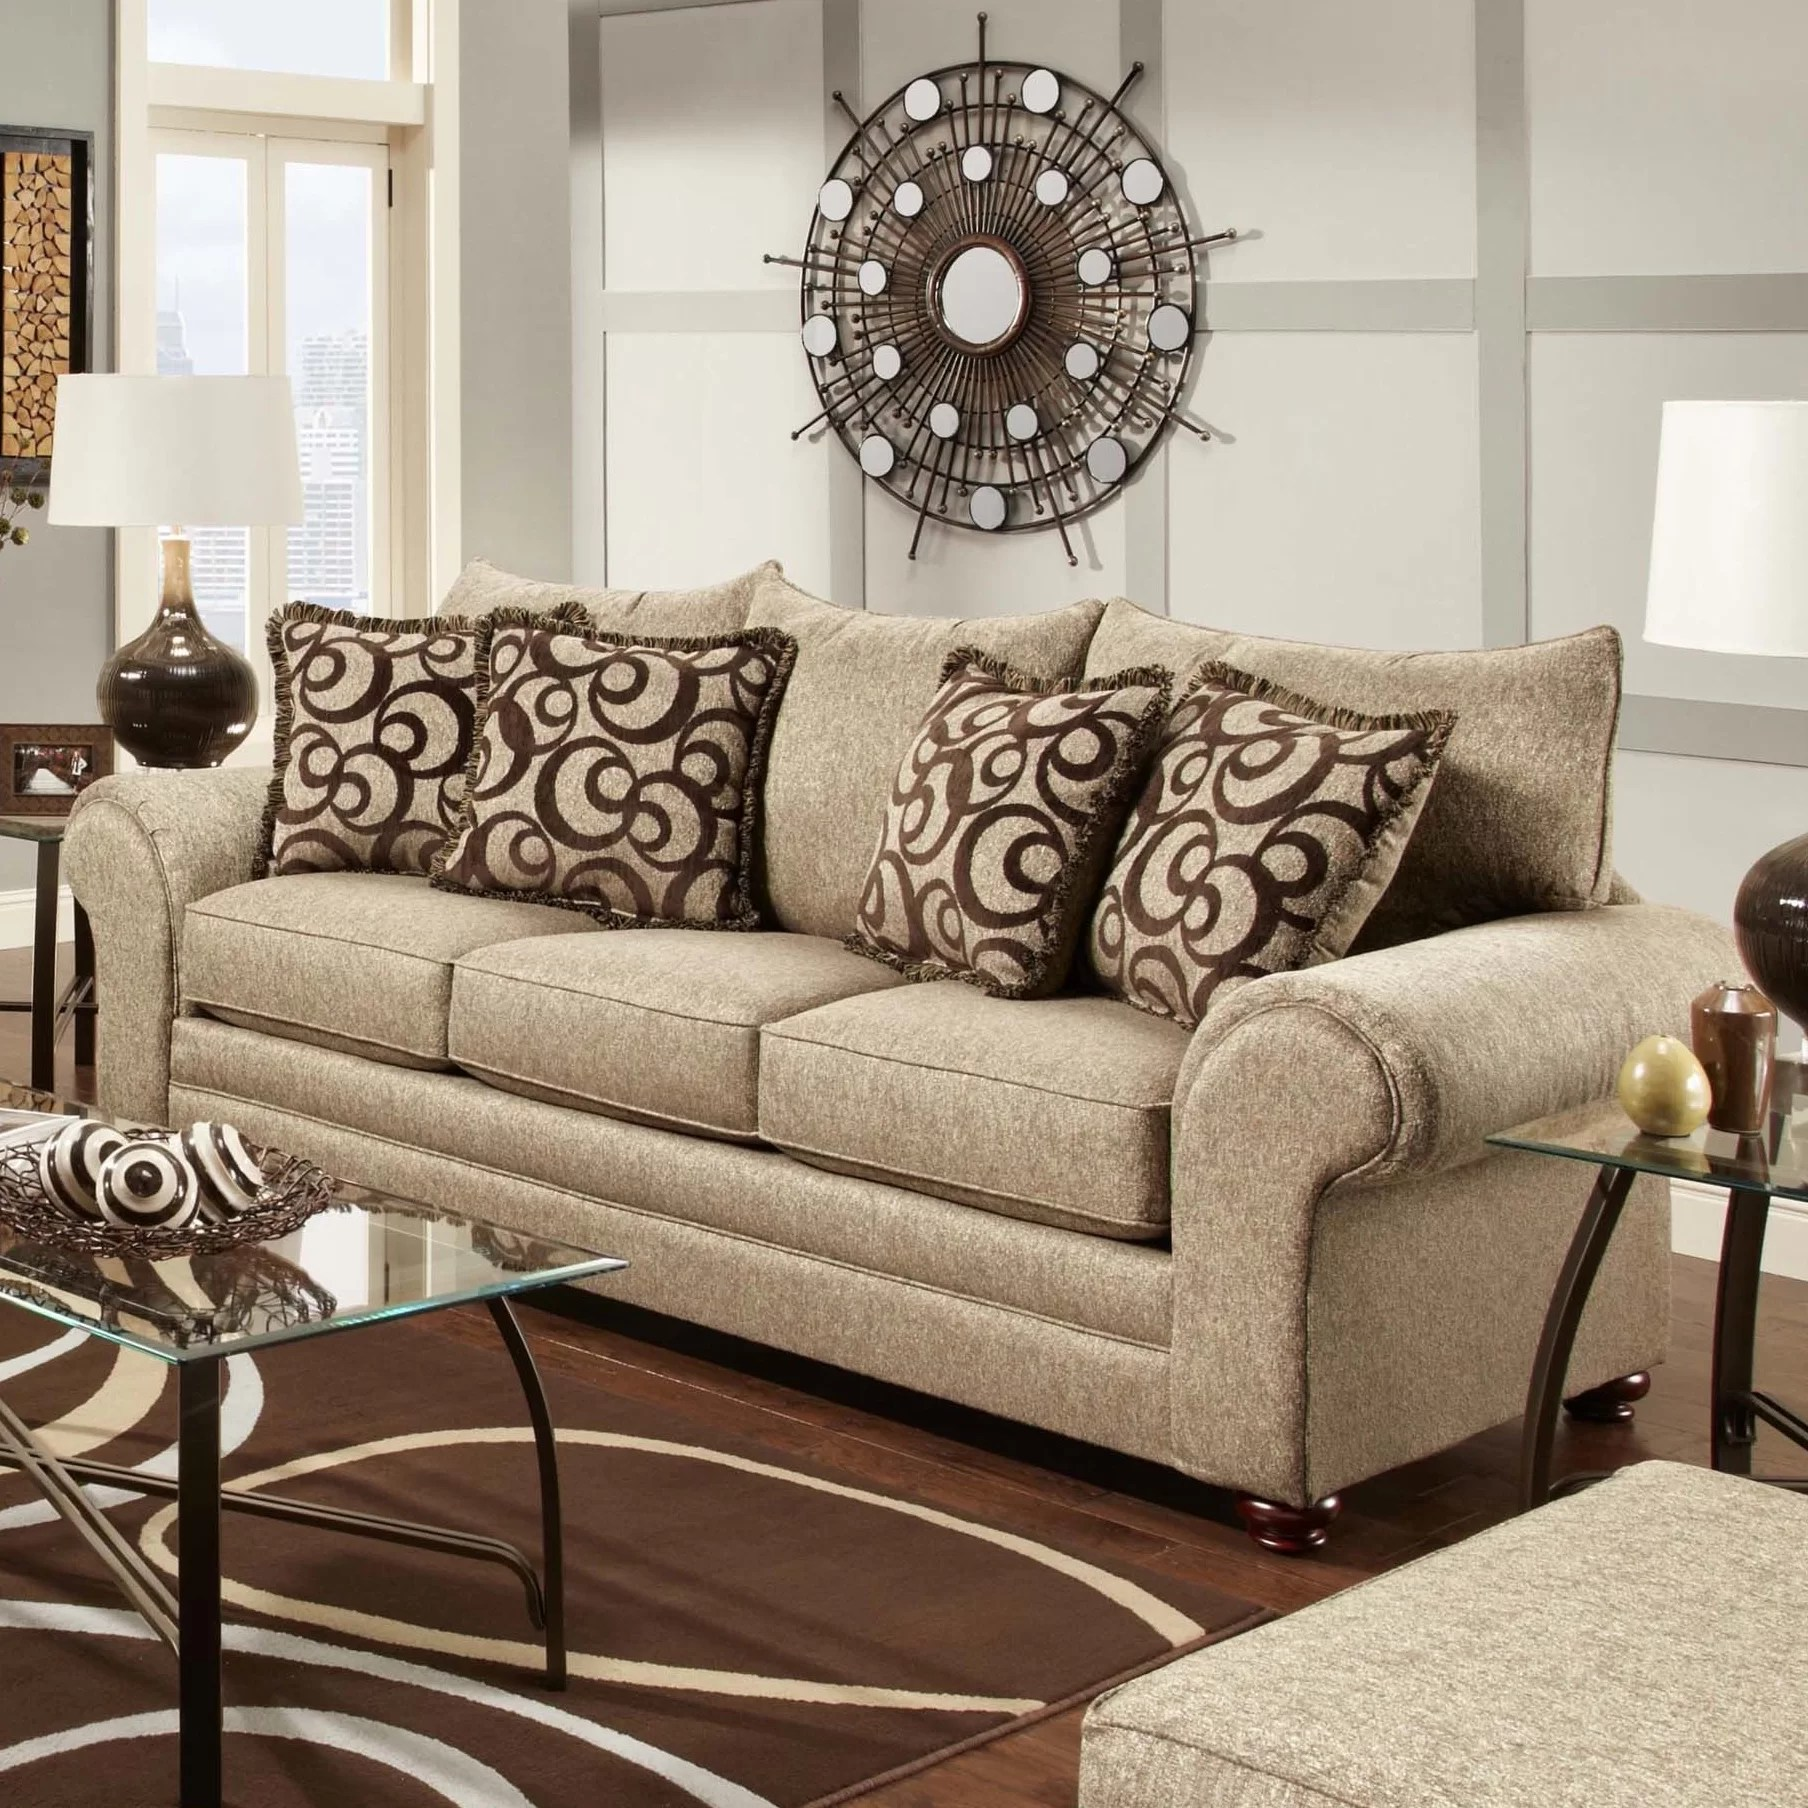 chelsea square sofa navy tufted sectional home astrid and reviews wayfair